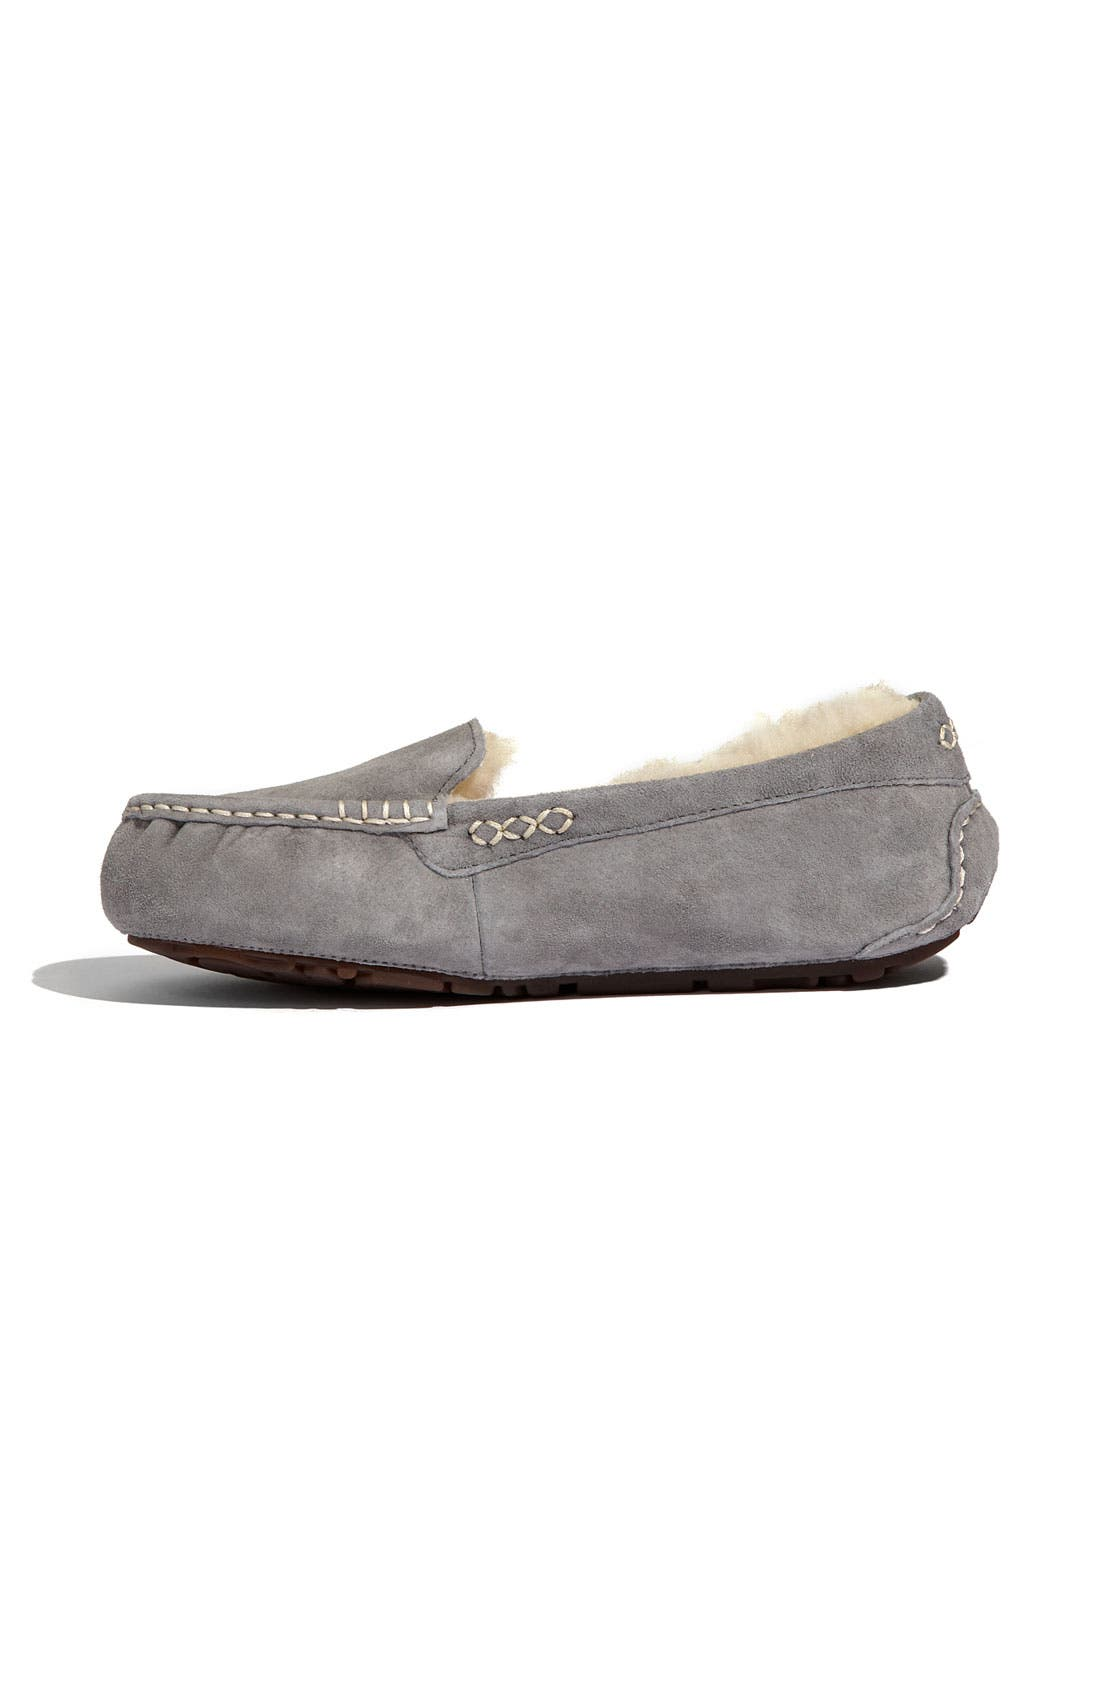 UGG<SUP>®</SUP>, Ansley Water Resistant Slipper, Alternate thumbnail 8, color, LIGHT GREY